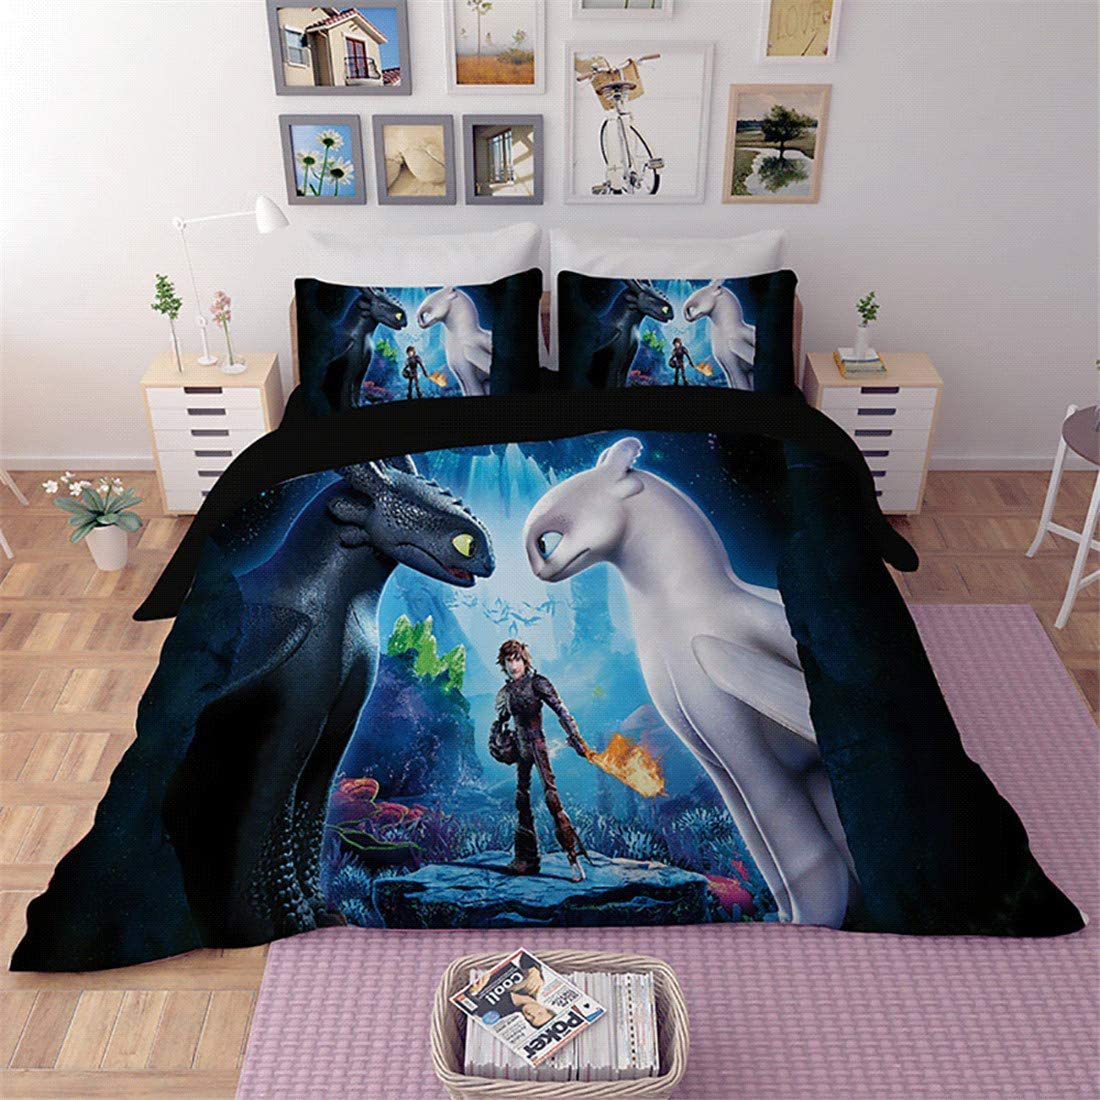 EVDAY How to Train Your Dragon Kids Bedding for Boys 3D Cartoon Super Soft Microfiber 3 Piece Bed Cover Set Including 1Duvet Cover,2 Pillowcases King Queen Full Twin Size